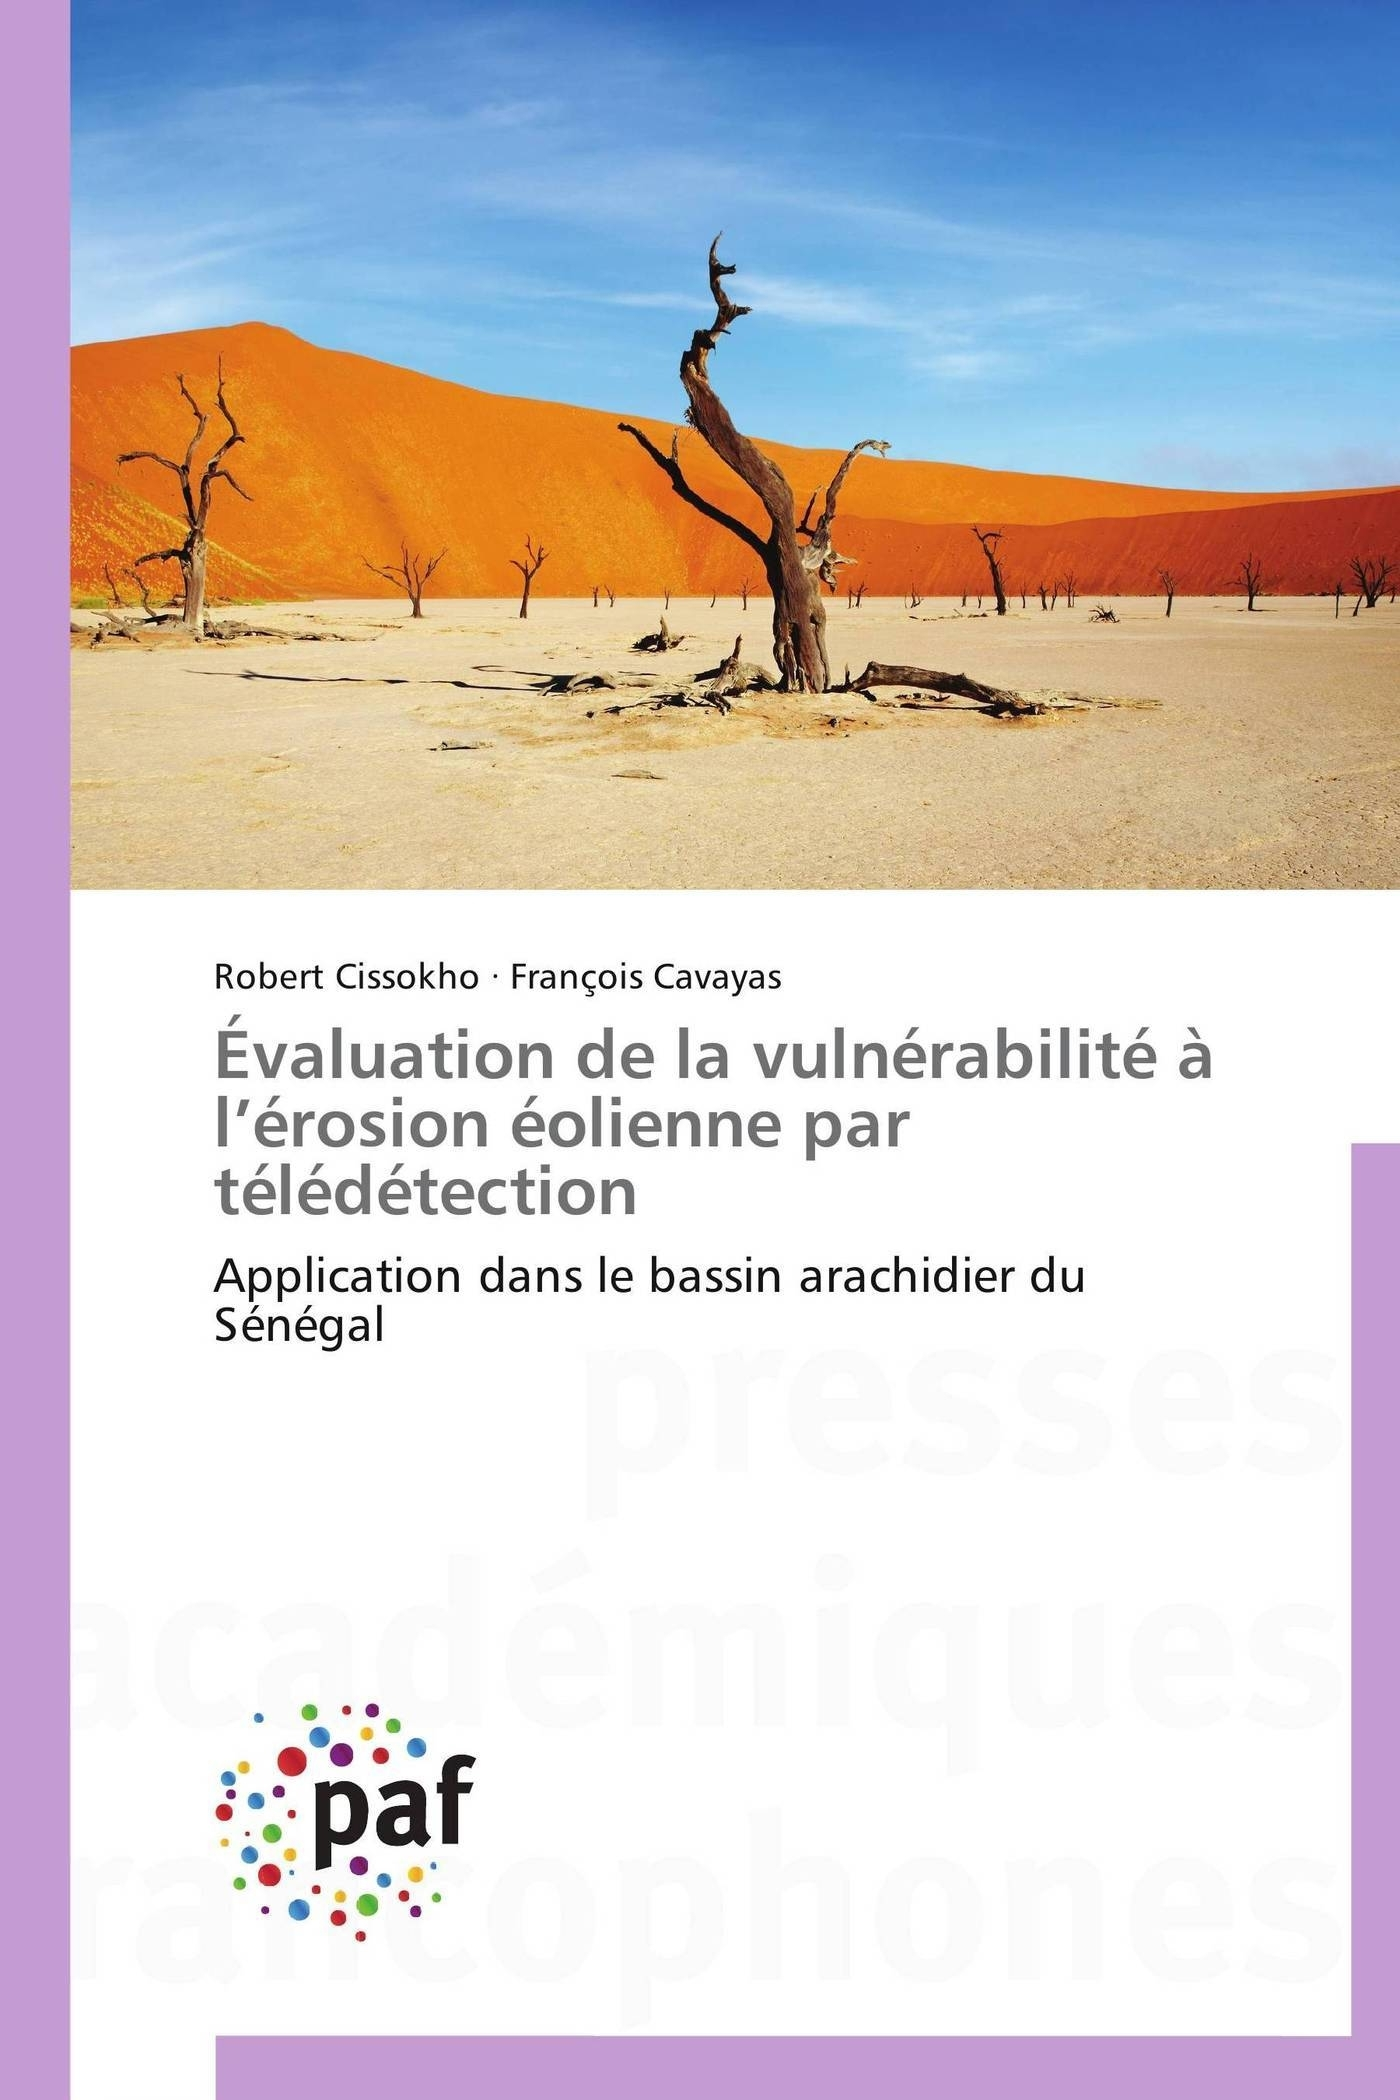 EVALUATION DE LA VULNERABILITE A L EROSION EOLIENNE PAR TELEDETECTION